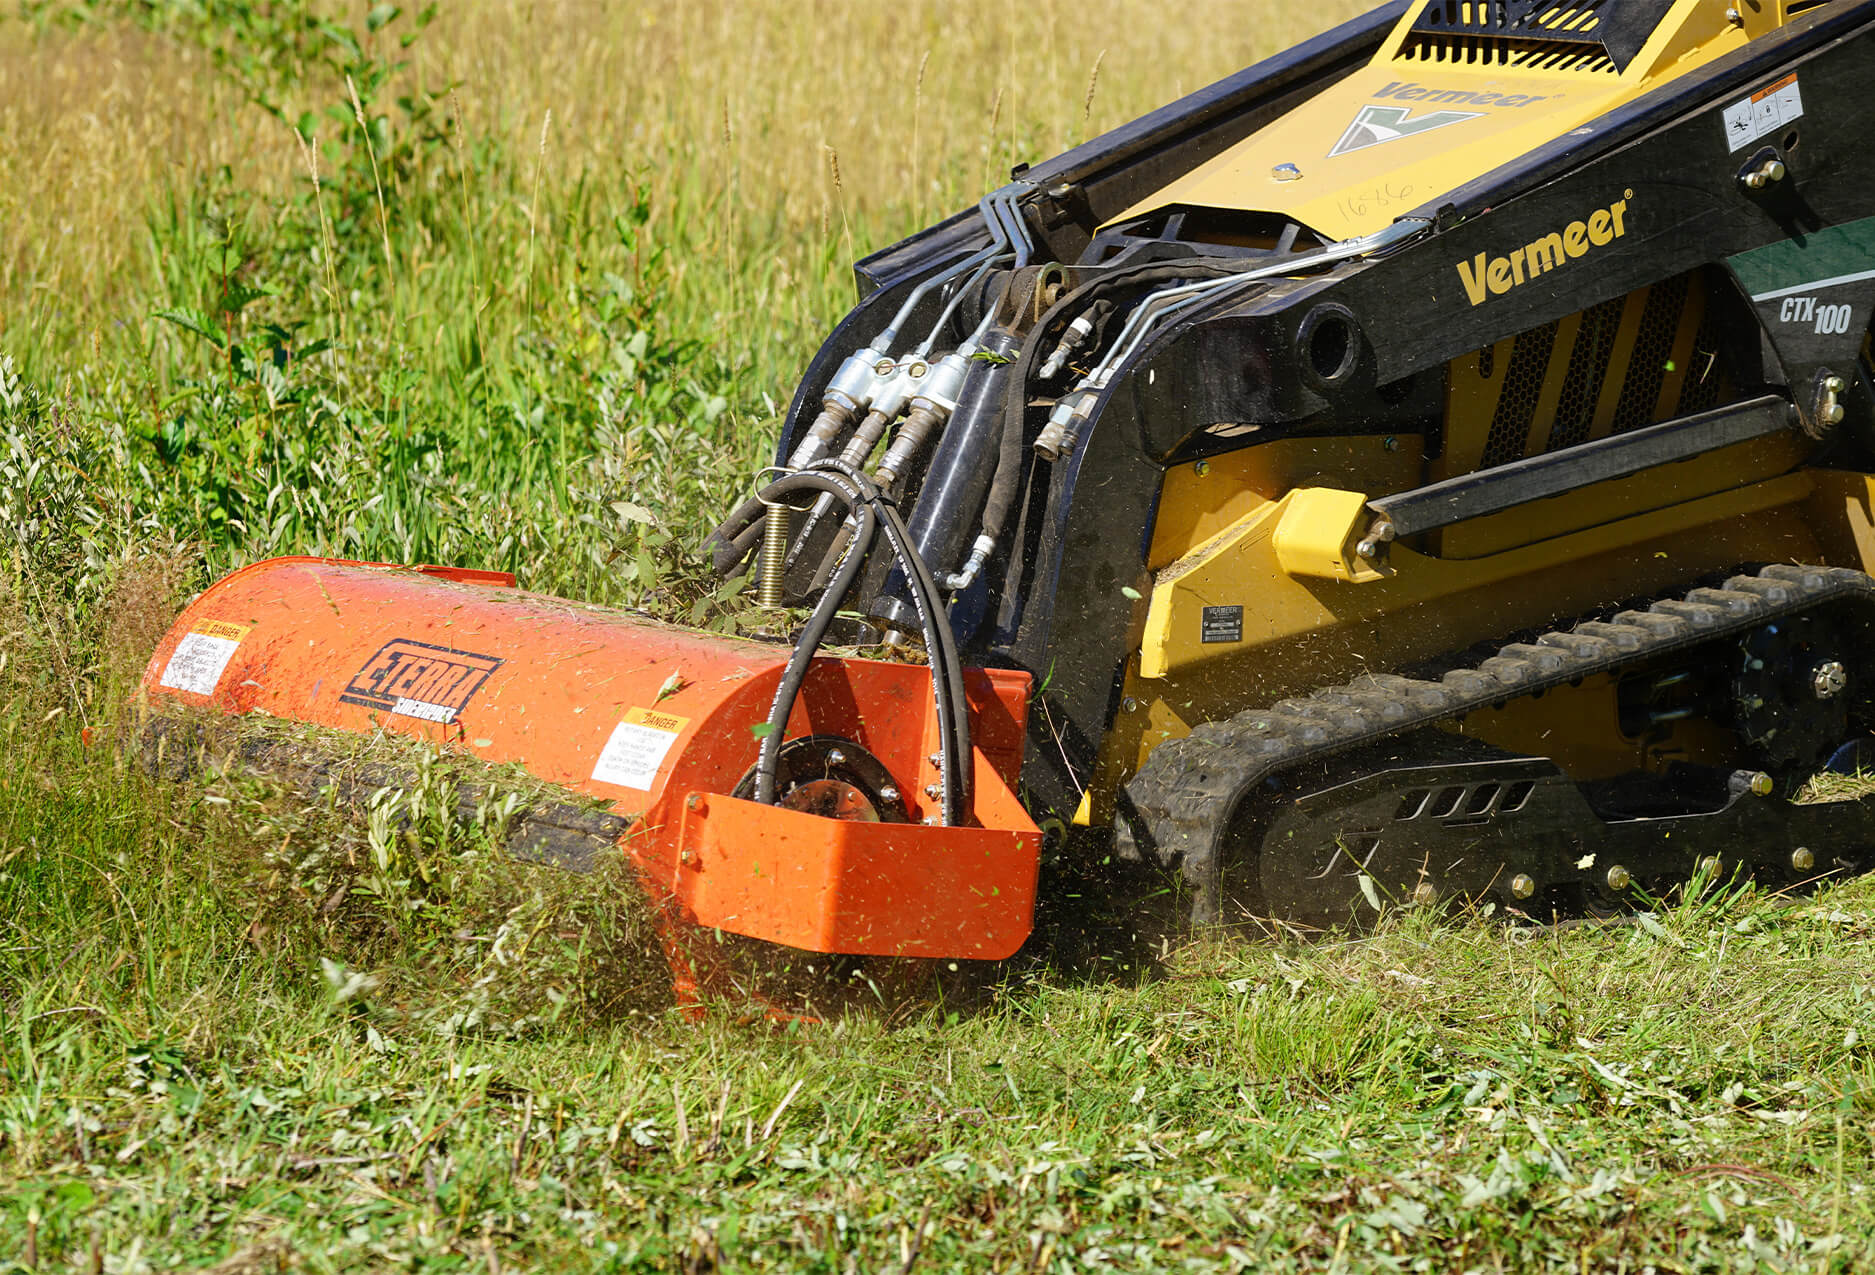 Eterra Sidewinder mini Skid Steer flail mower field mowing